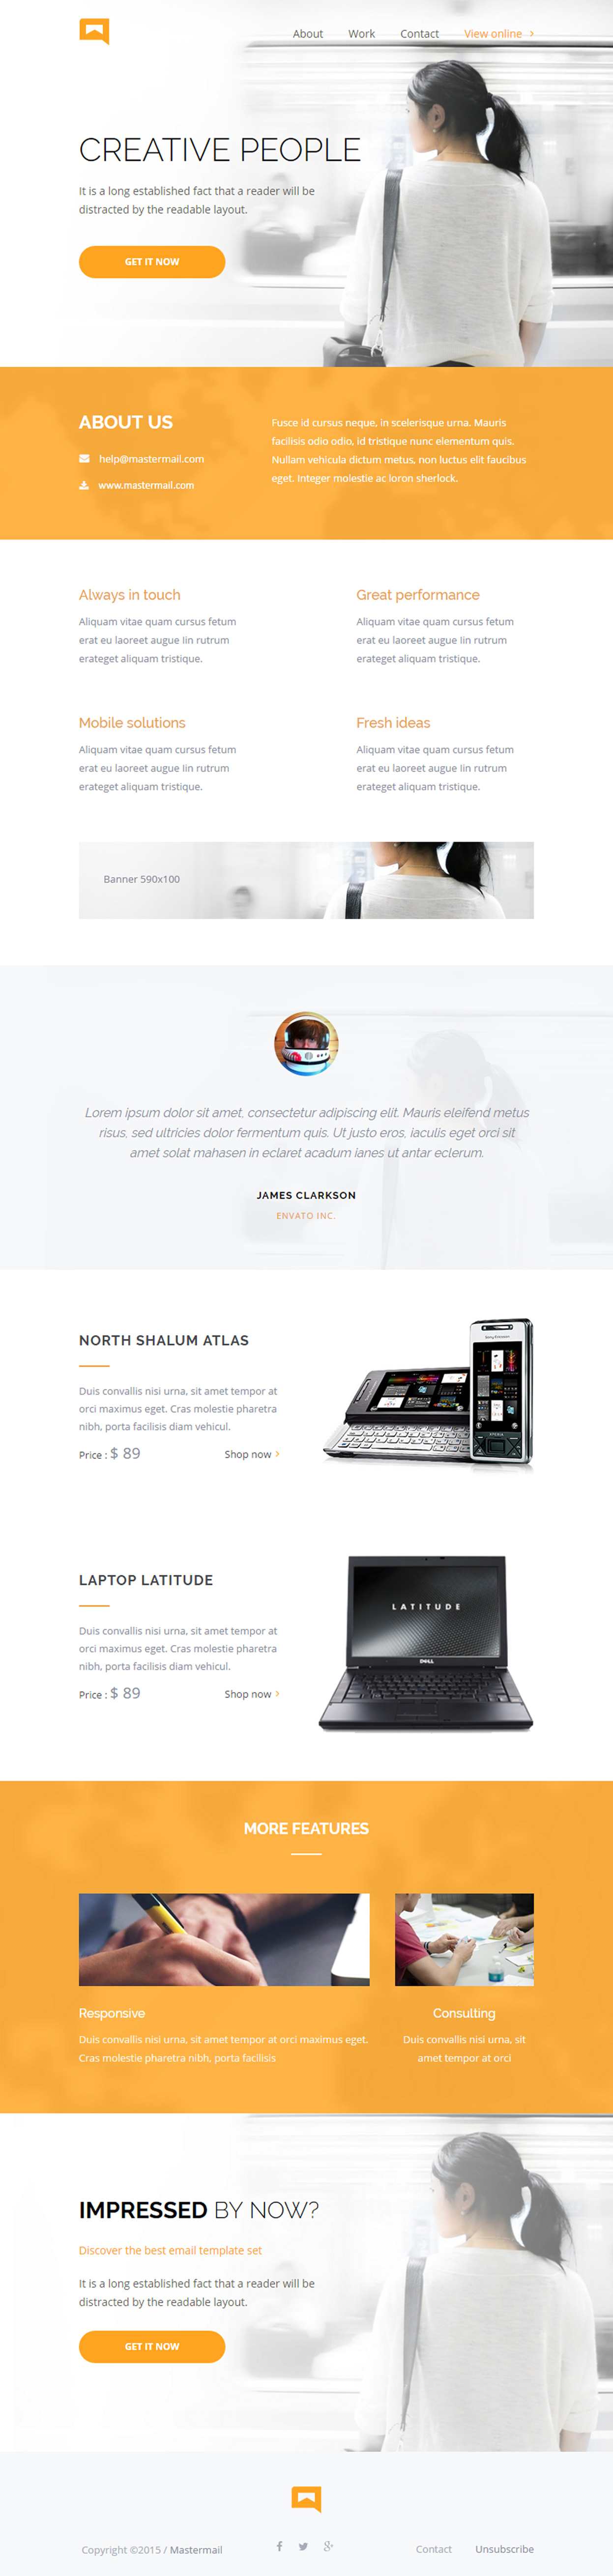 5 best email newsletter template responsive miracle. Black Bedroom Furniture Sets. Home Design Ideas